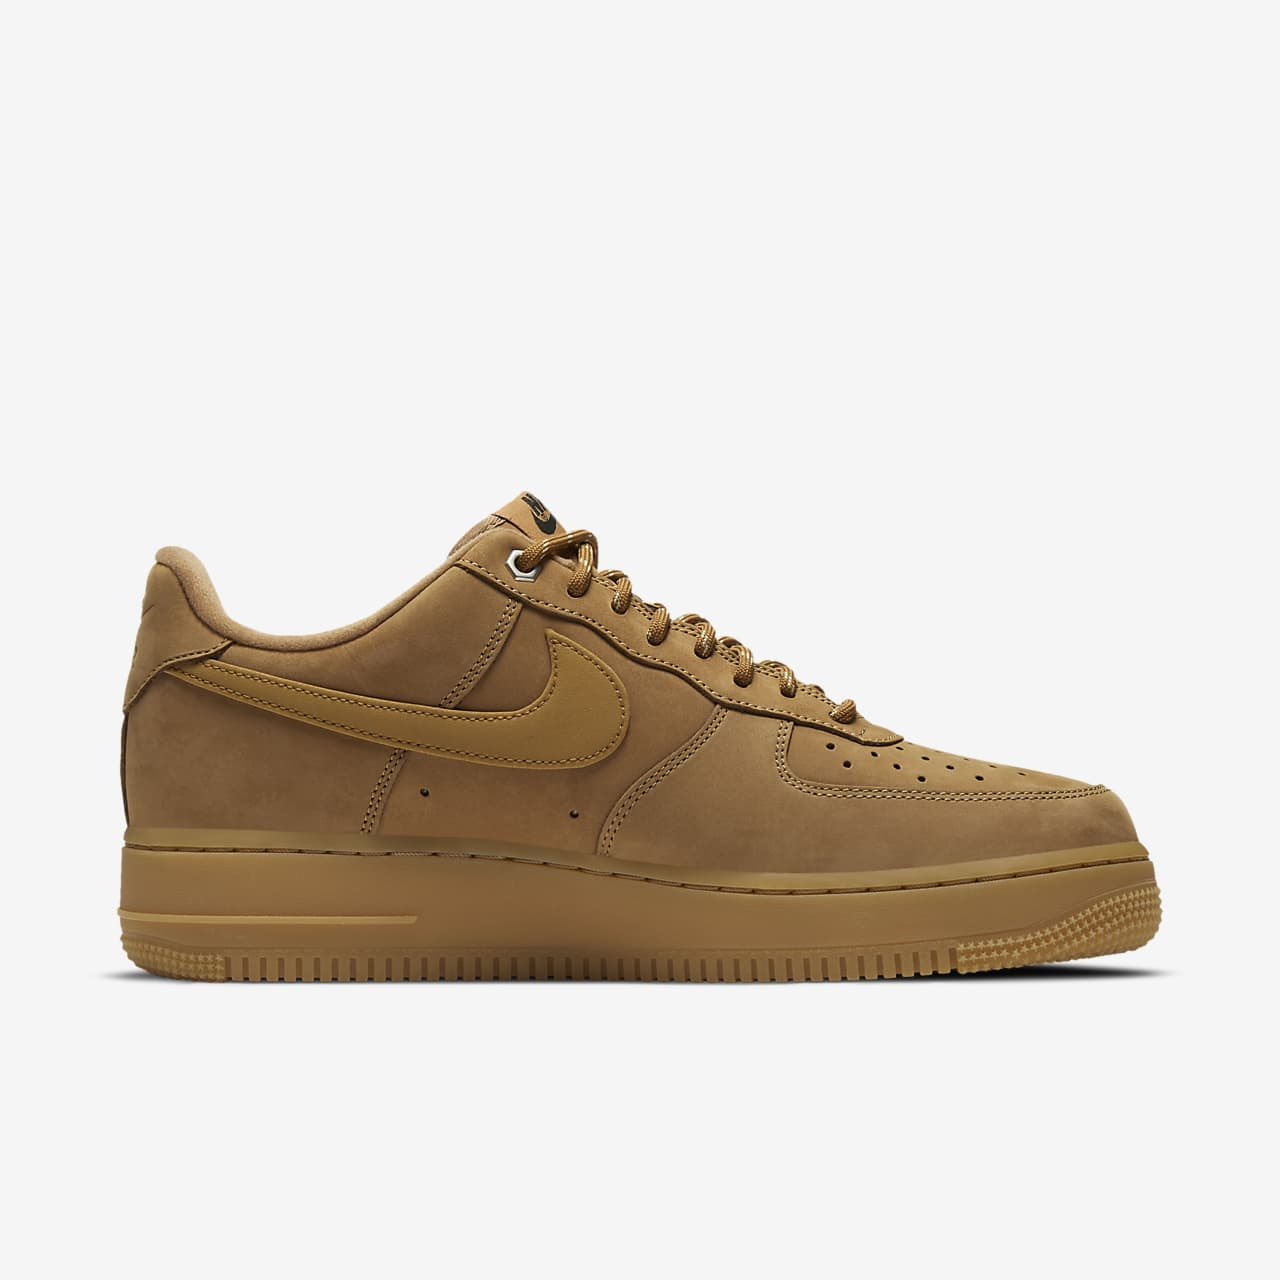 Nike Air Force 1 '07 WB Men's Shoe